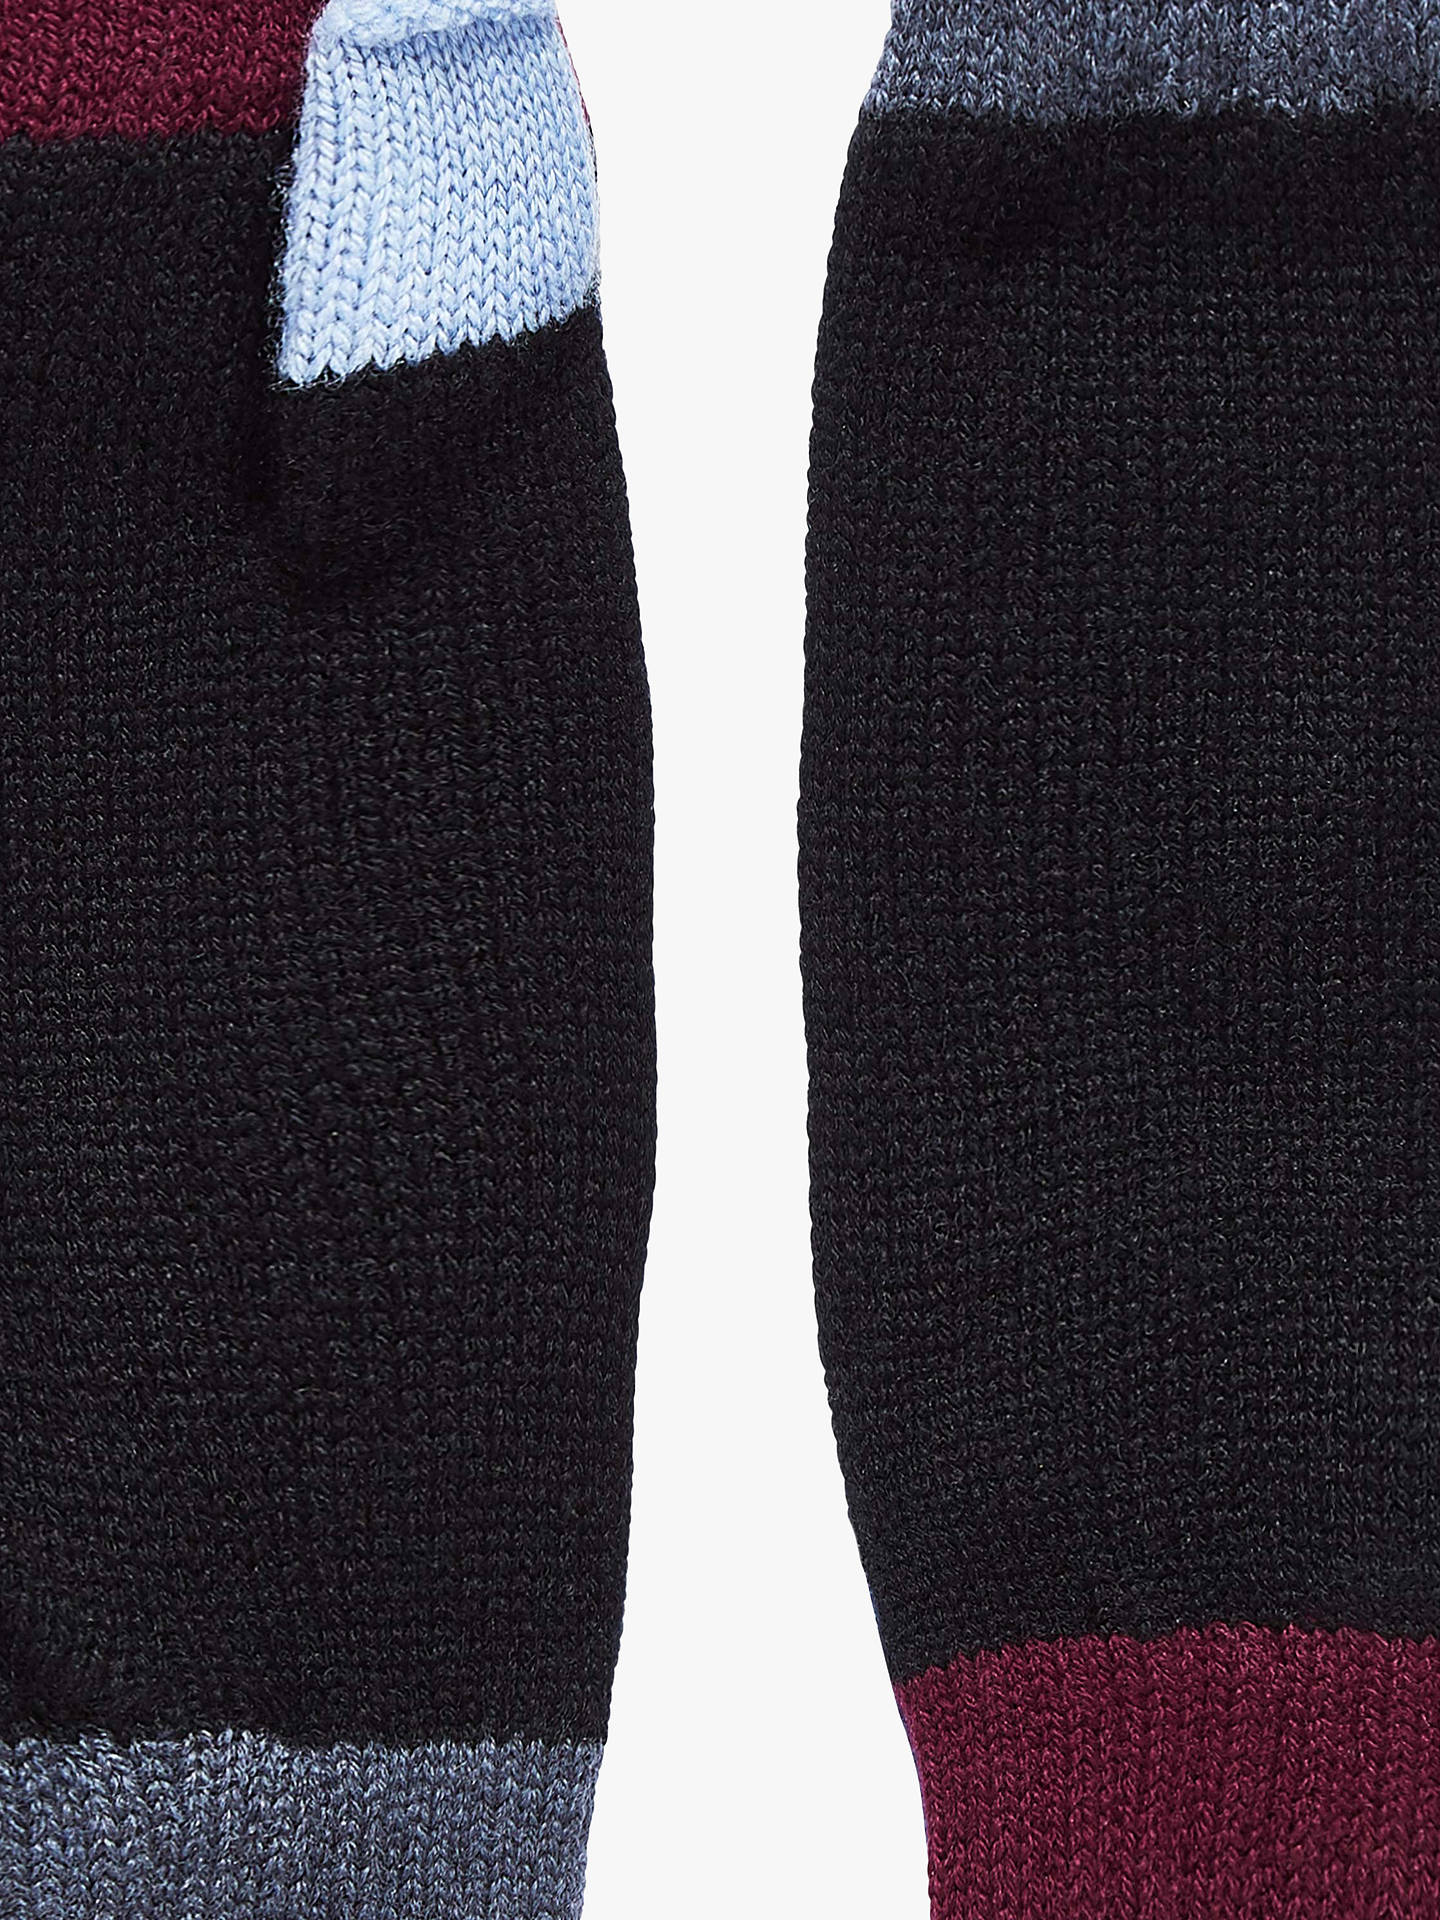 Buy Brora Colour Block Cashmere Wristwarmers, Black, One Size Online at johnlewis.com